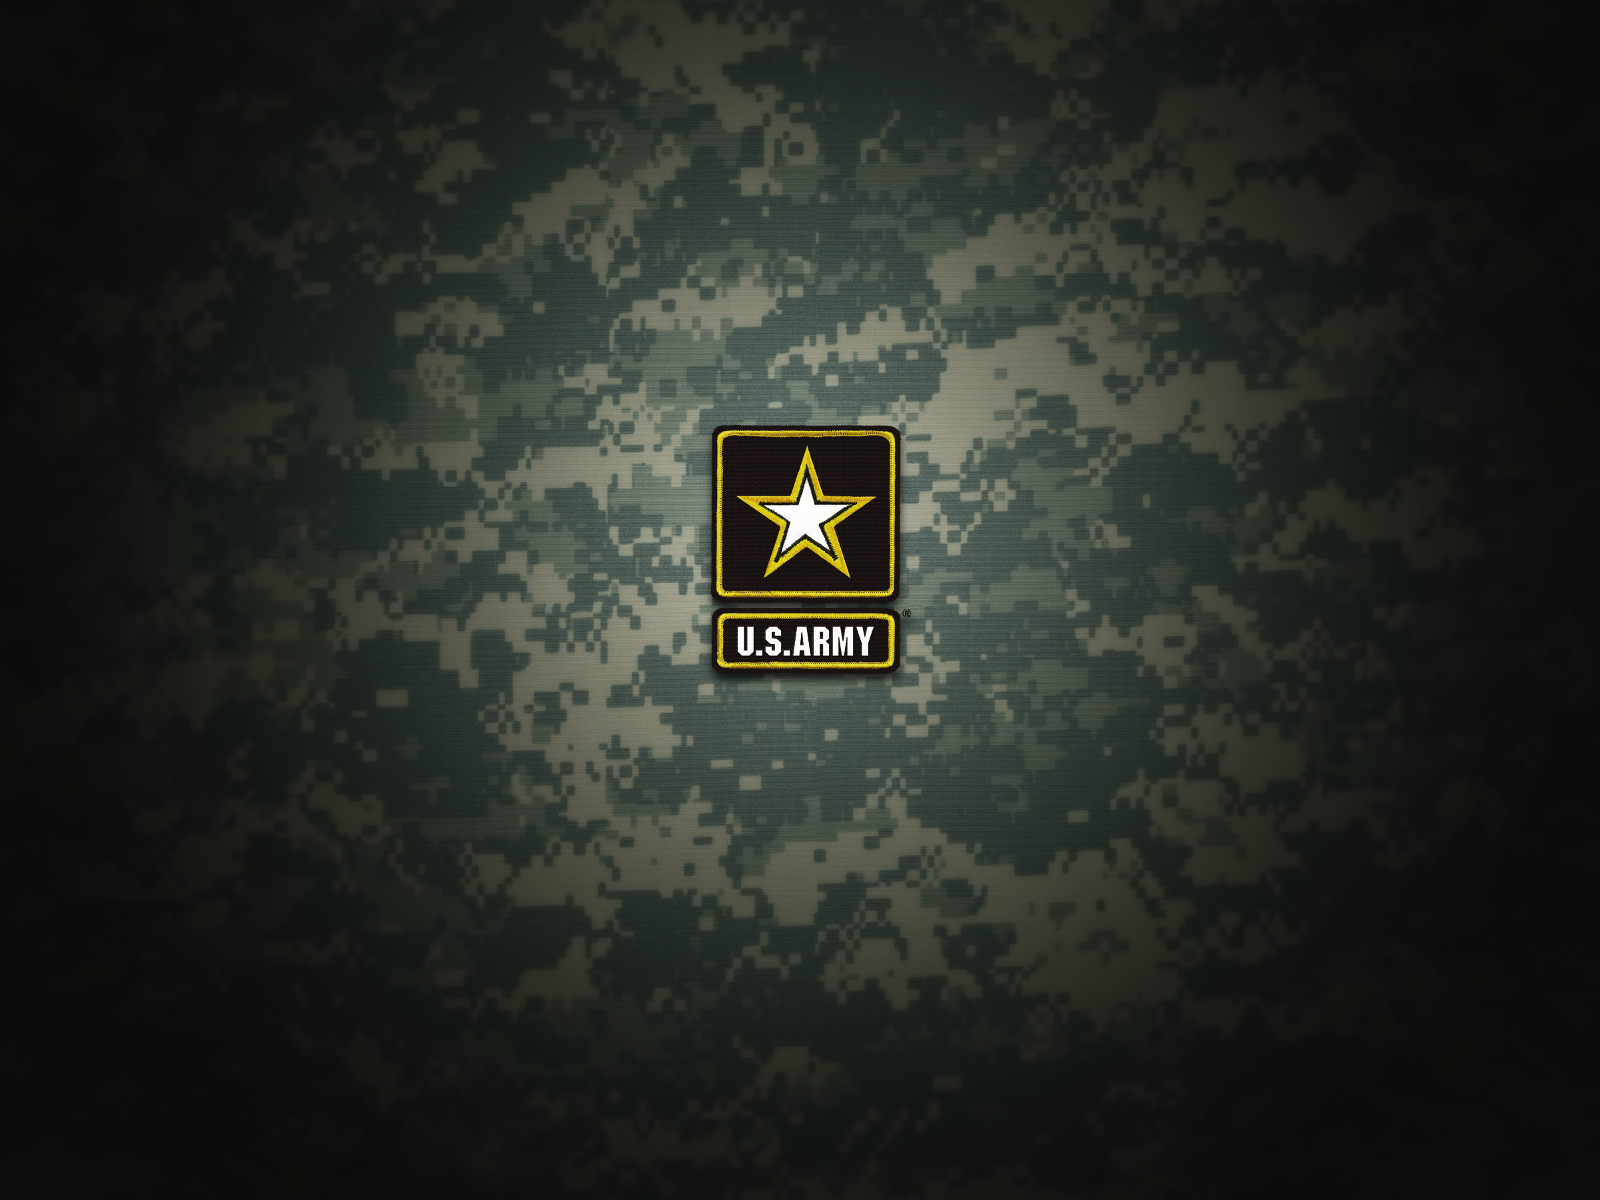 Army Love Hd Wallpaper : us army wallpapers logo - HD Desktop Wallpapers 4k HD